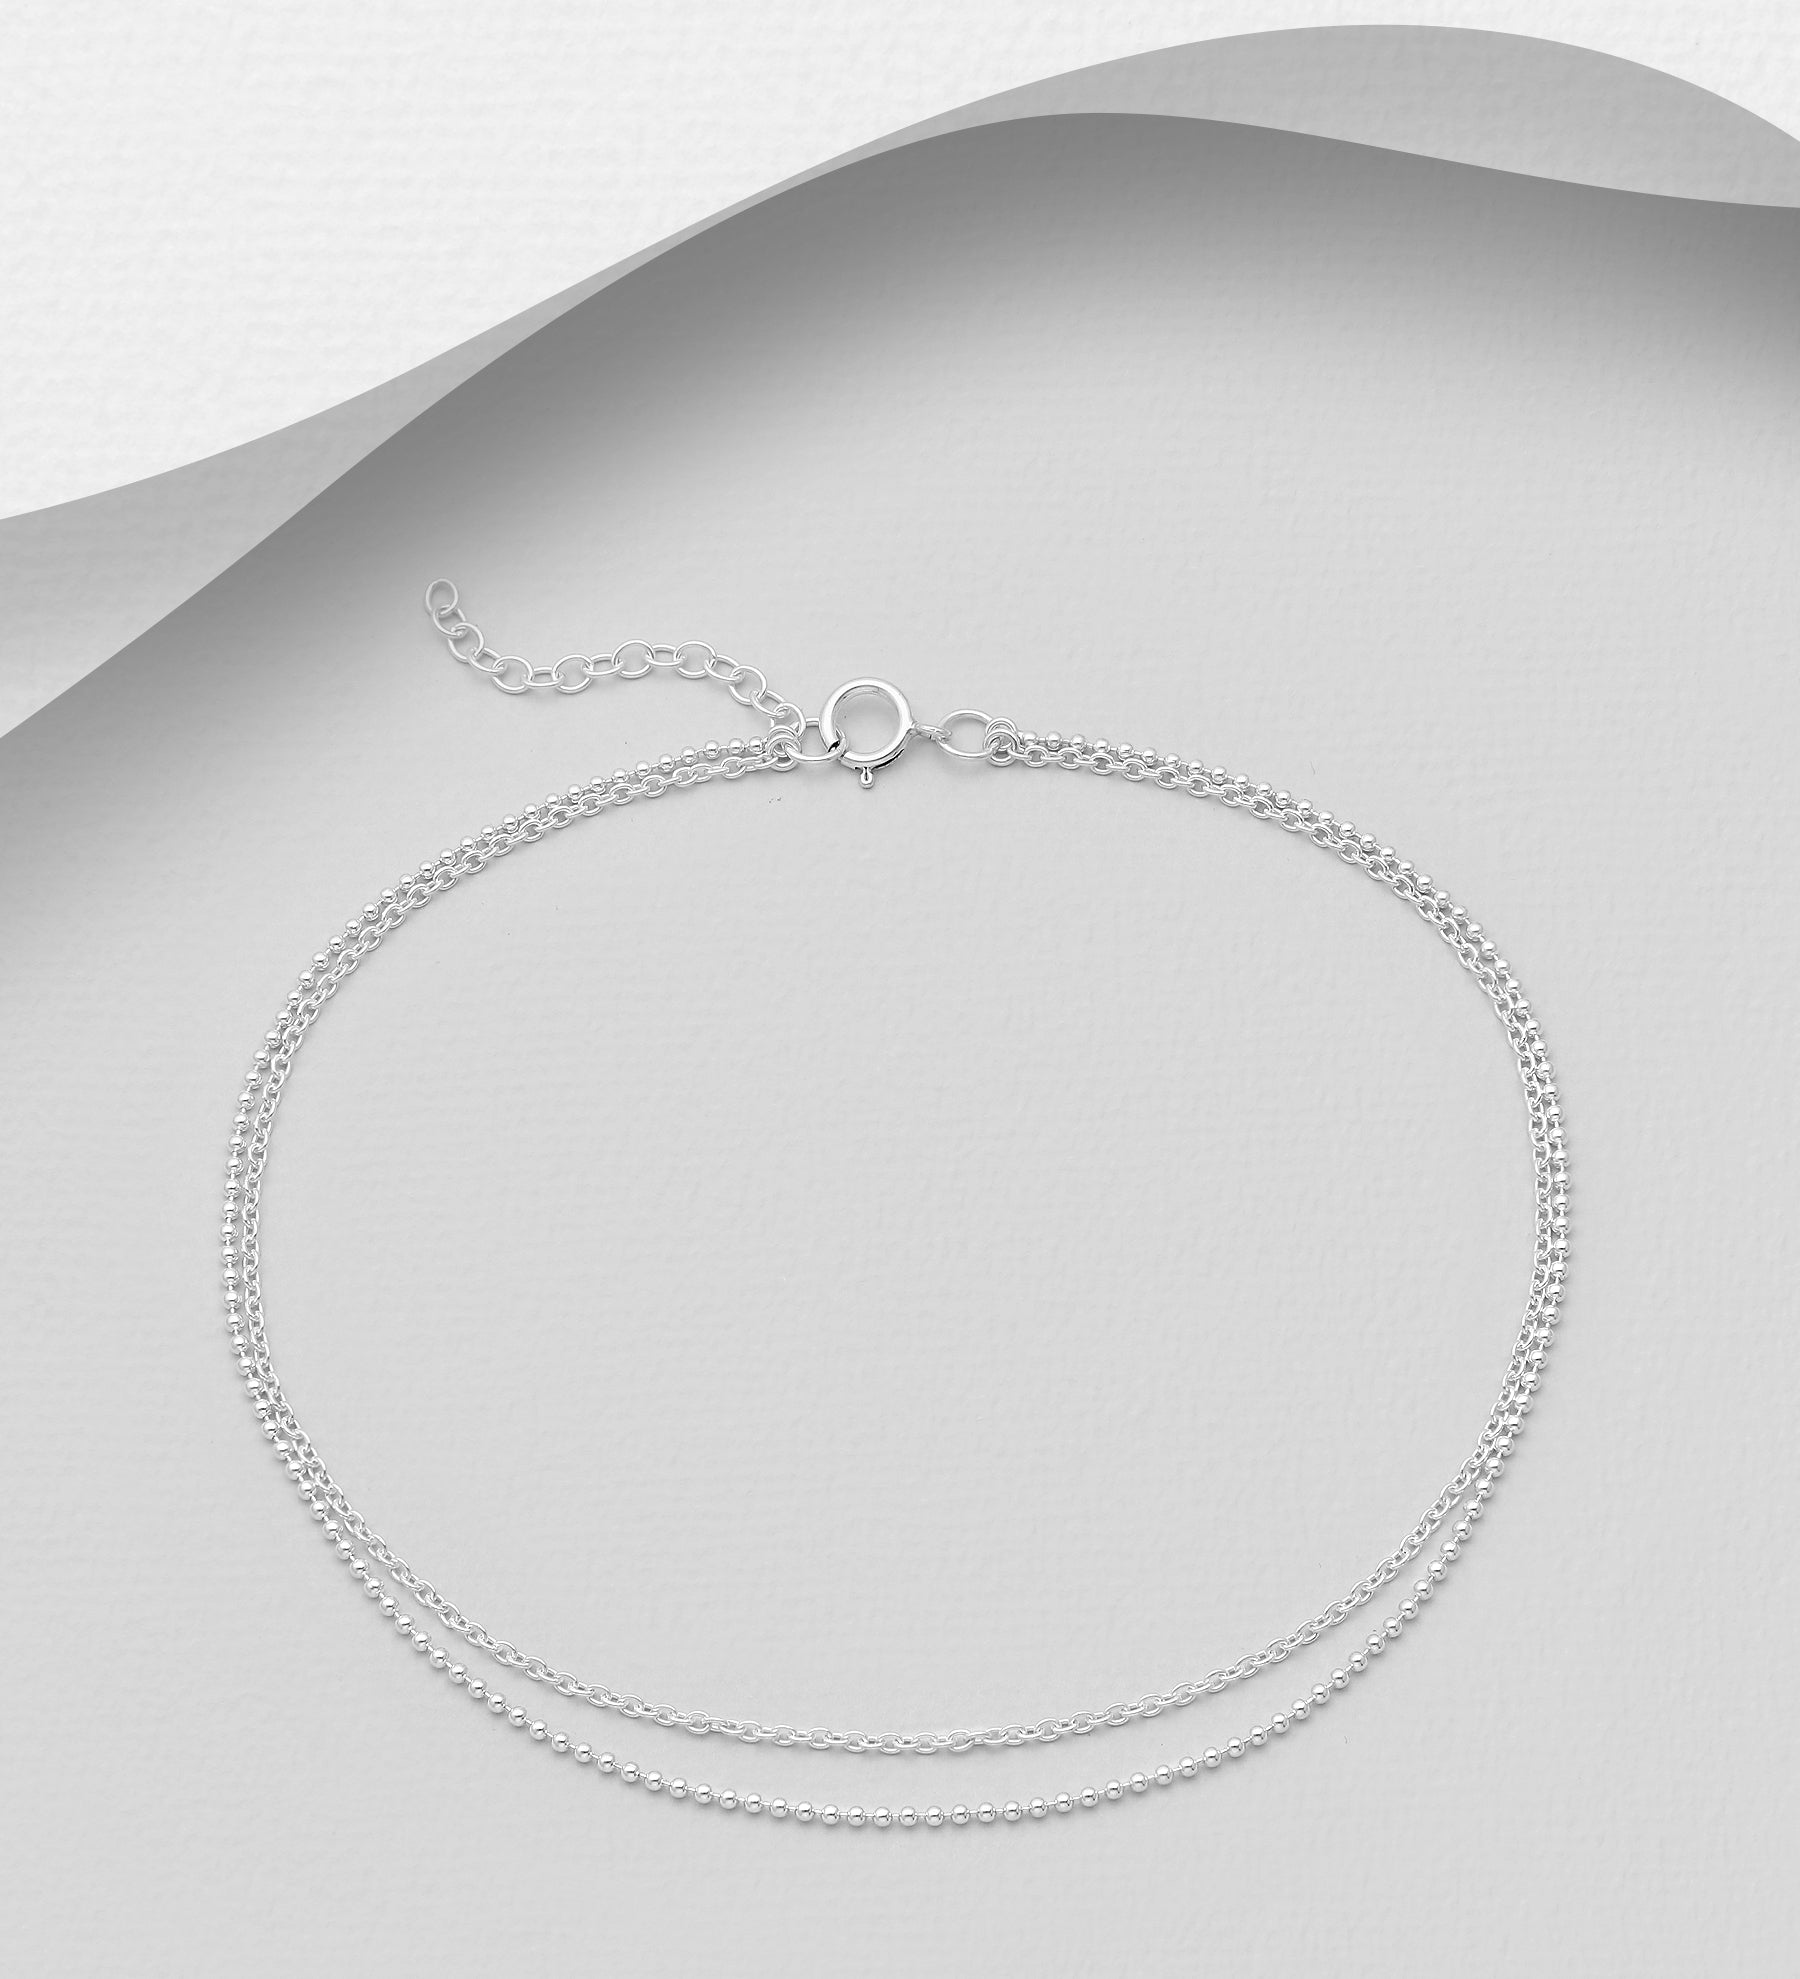 Double chain boho anklet in sterling silver by KesleyBoutique.com, Girlwith3jobs.com, foot jewelry, gifts for her, vacation jewelry